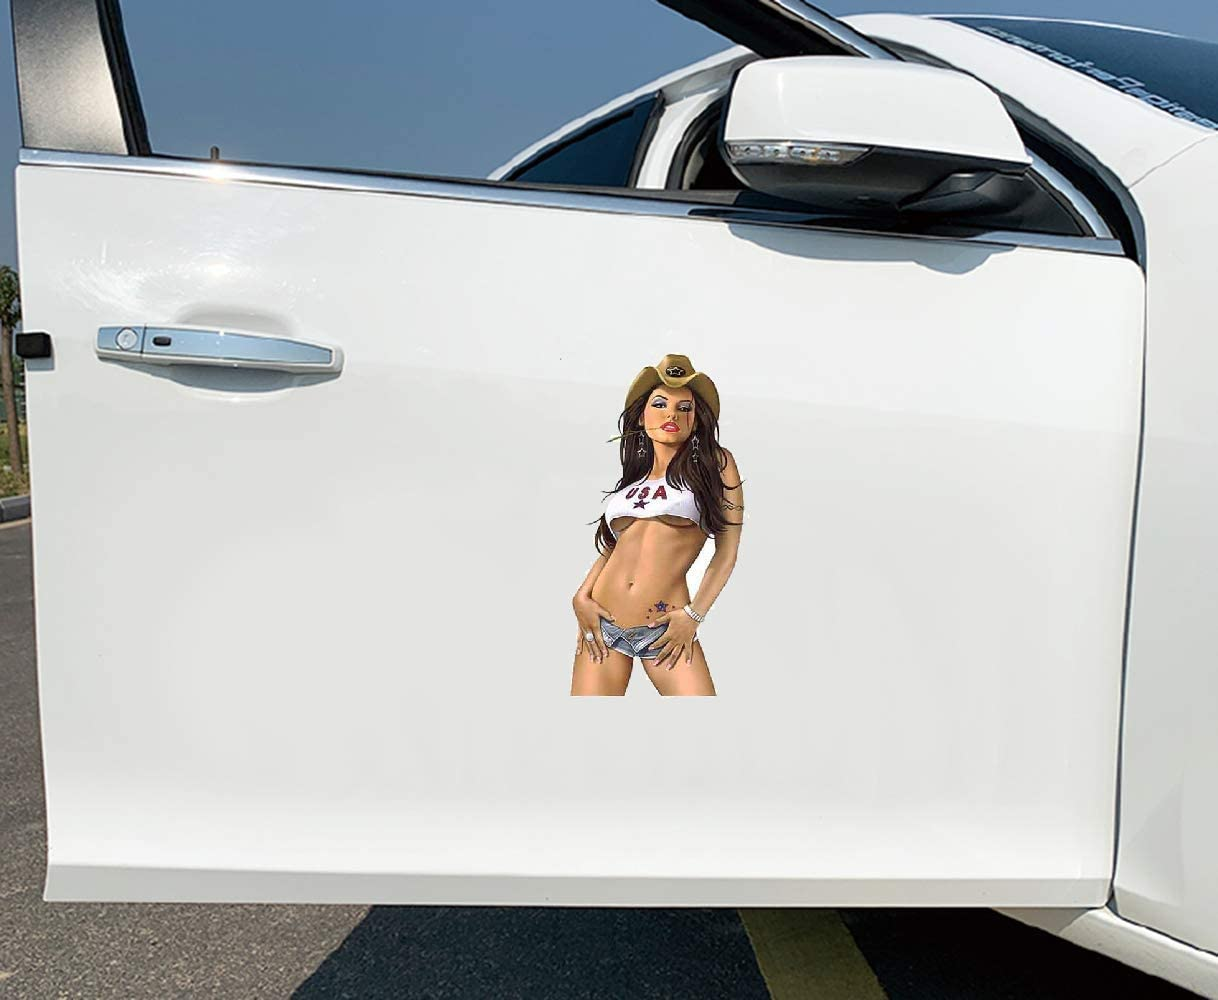 for Ultra Rare Sexy All American Cow Girl Pinup Gir Car Sticker Occlusion Scratch Bumper Window Stickers 13Cm X 7.4Cm